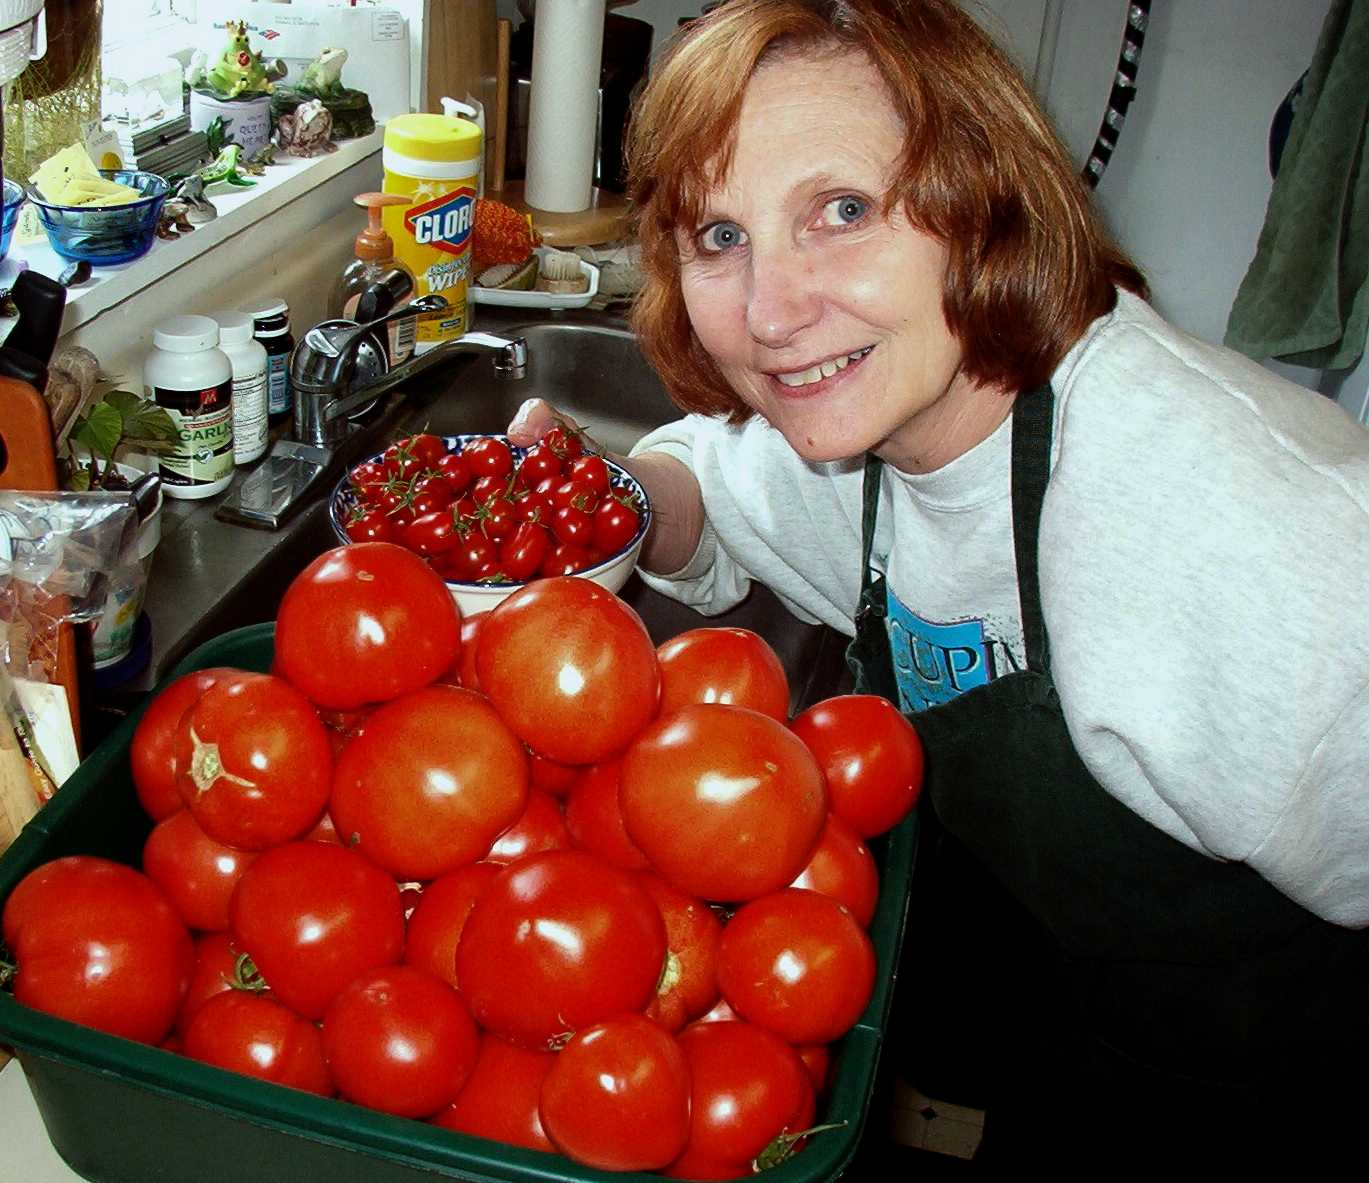 Linda with fresh tomatoes